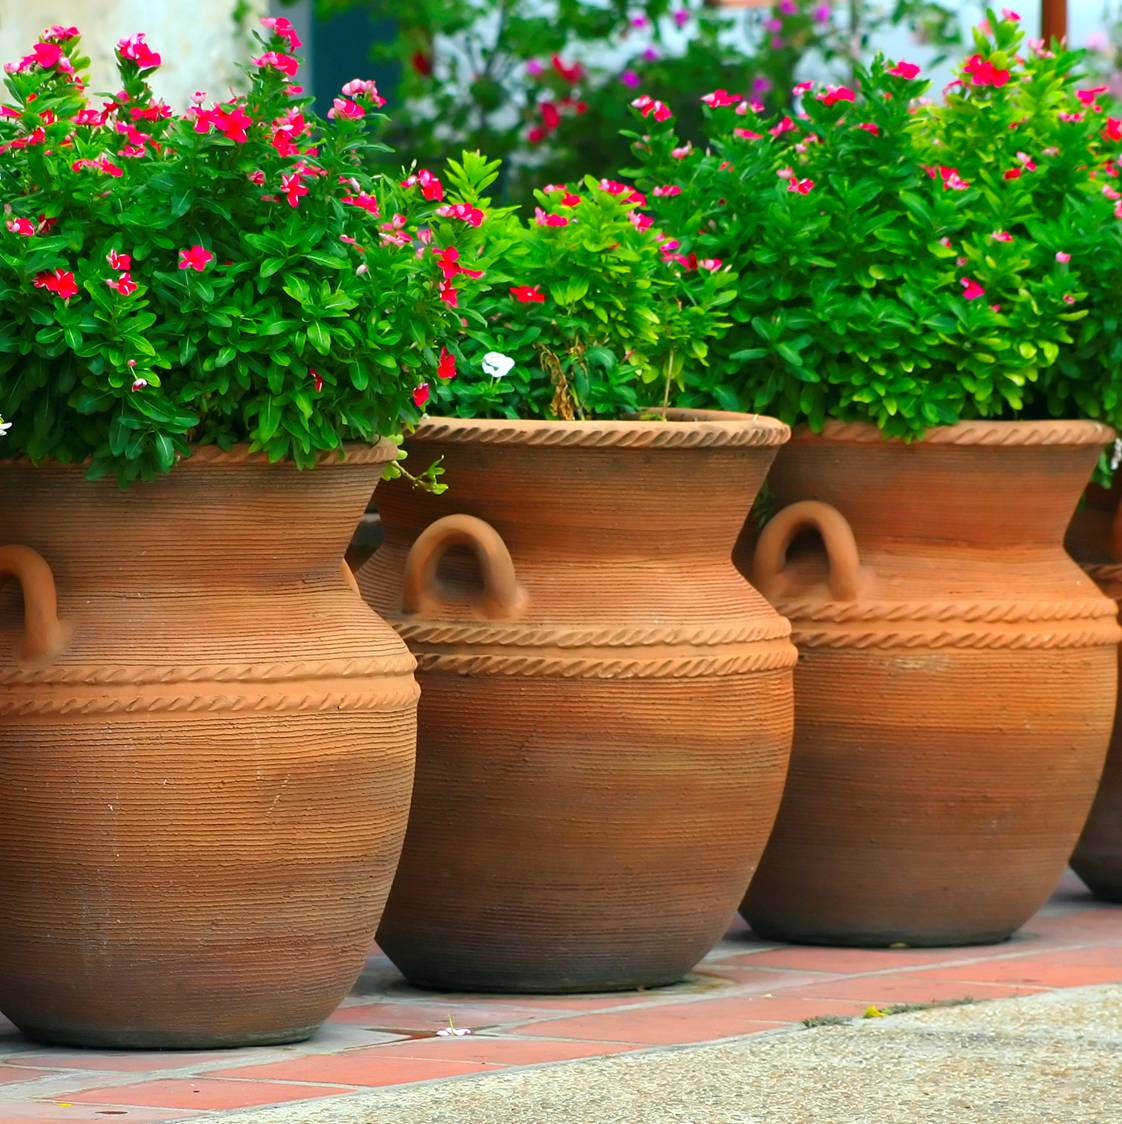 Giant Garden Pots Giant outdoor flower pots outdoor designs giant outdoor flower pots designs workwithnaturefo